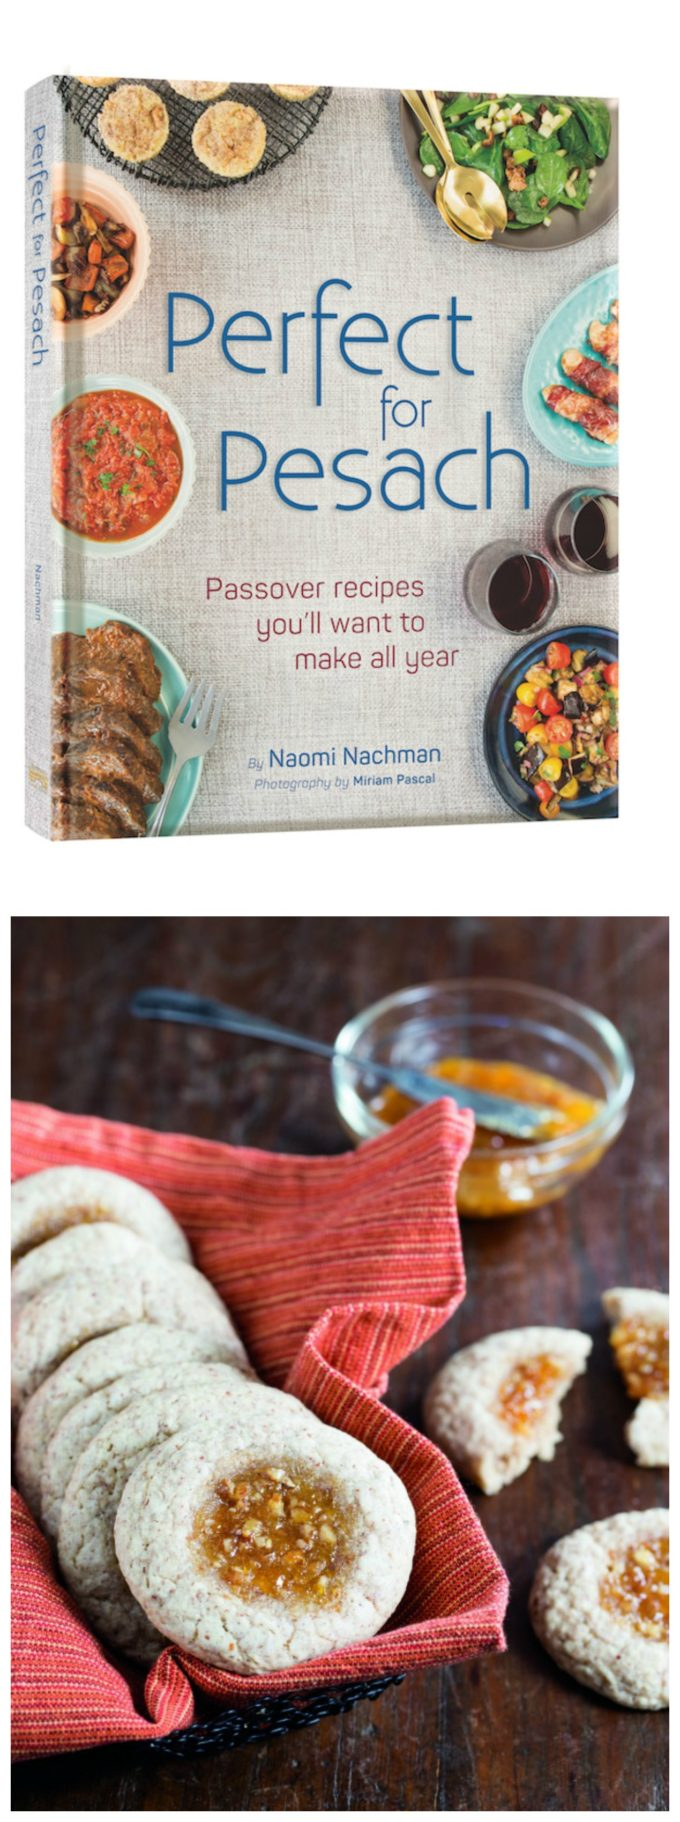 Great passover recipe for thumbprint cookies and a passover cookbook review